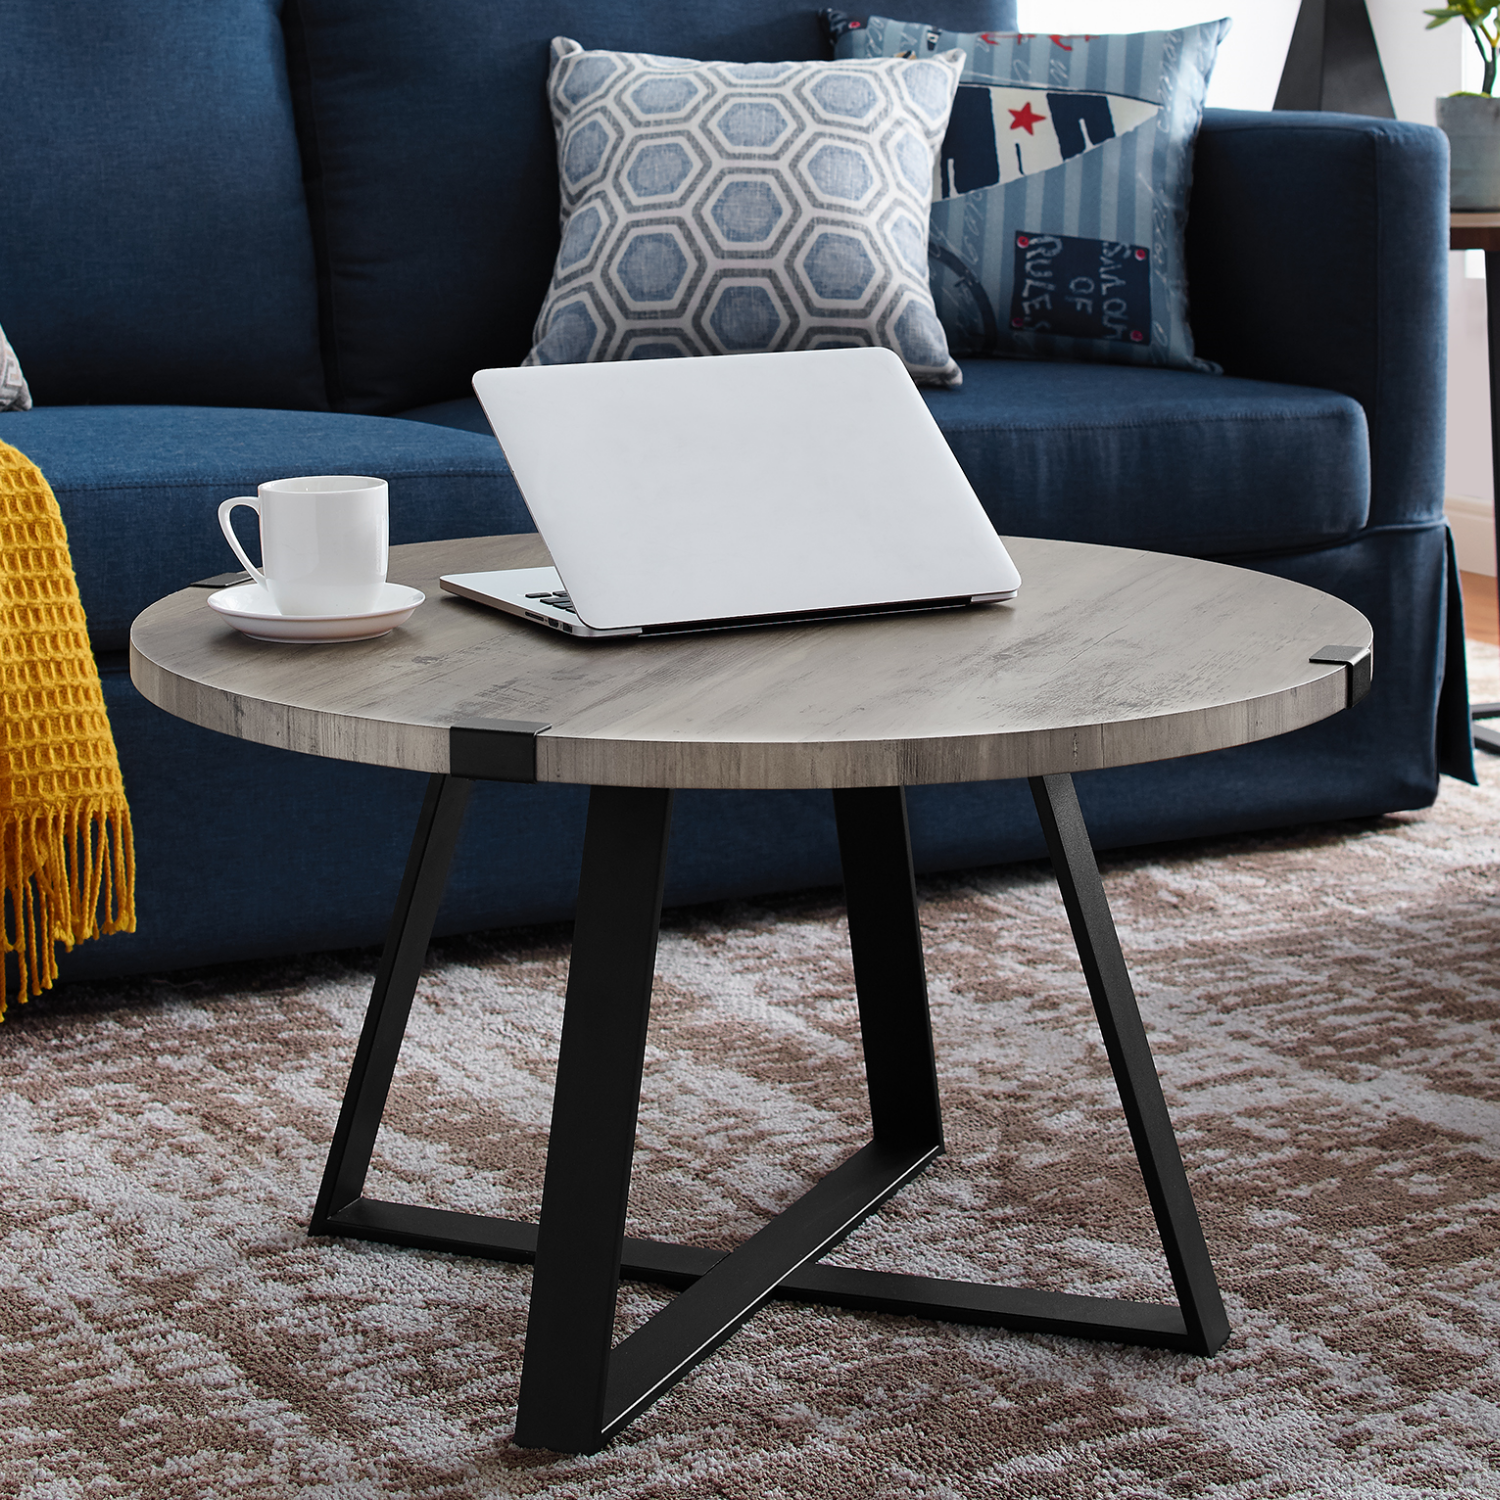 Grey Round Coffee Table With Metal Base Foster Furniture123